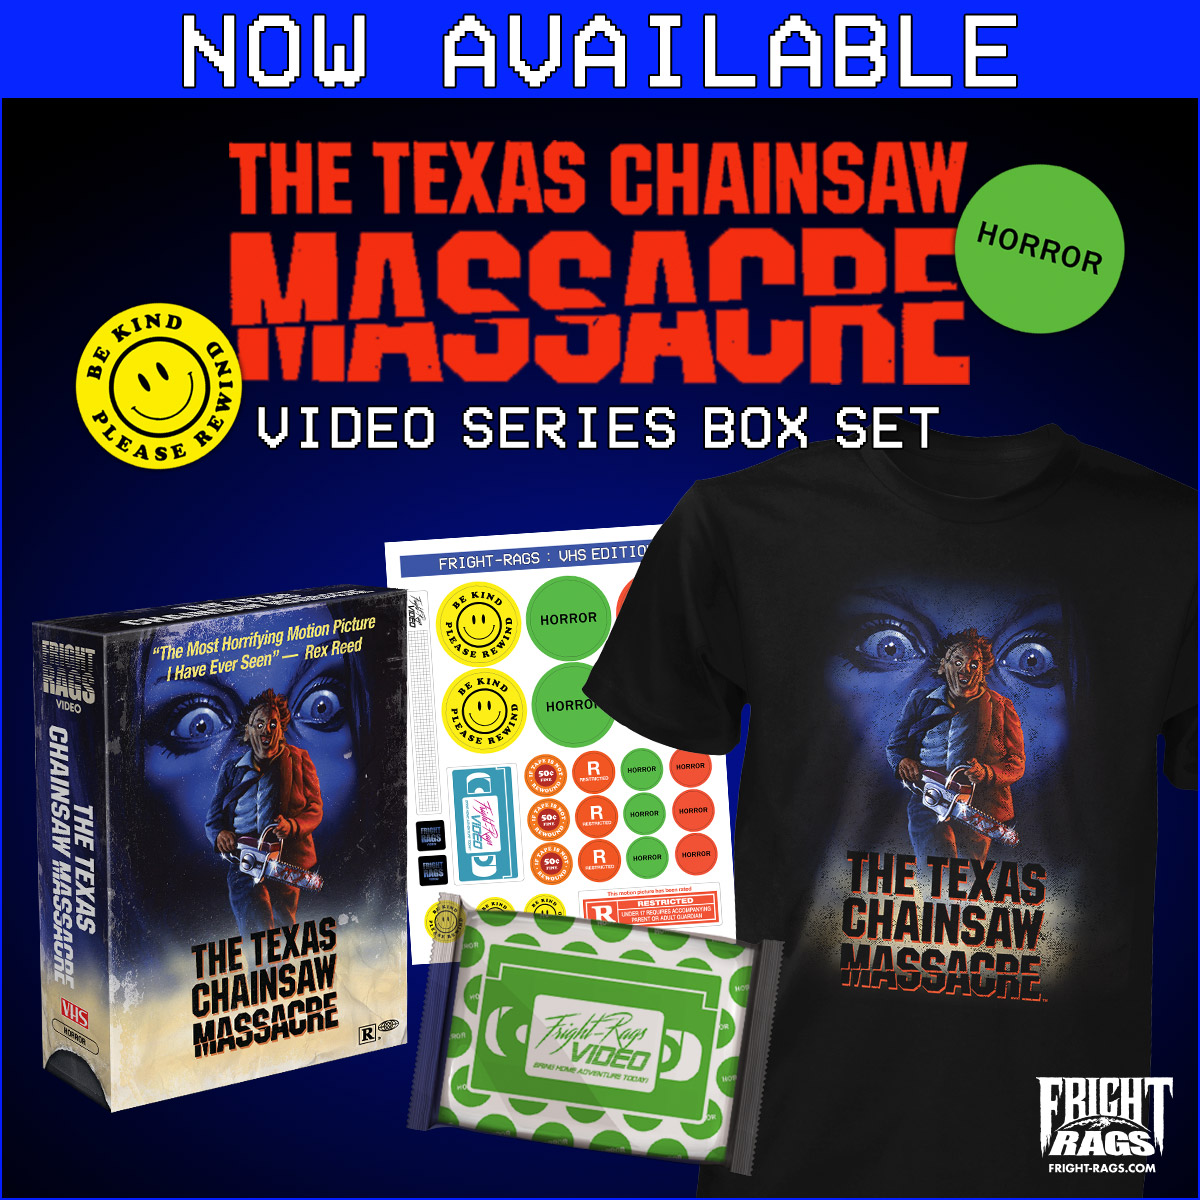 The Texas Chainsaw Massacre box set features the design on an exclusively T-shirt and a collector's box, plus a sheet of VHS stickers and custom microwavable popcorn. It's limited to 300 sets. Hoodies, baseball tees, and ringer tees featuring the artwork are available separately.